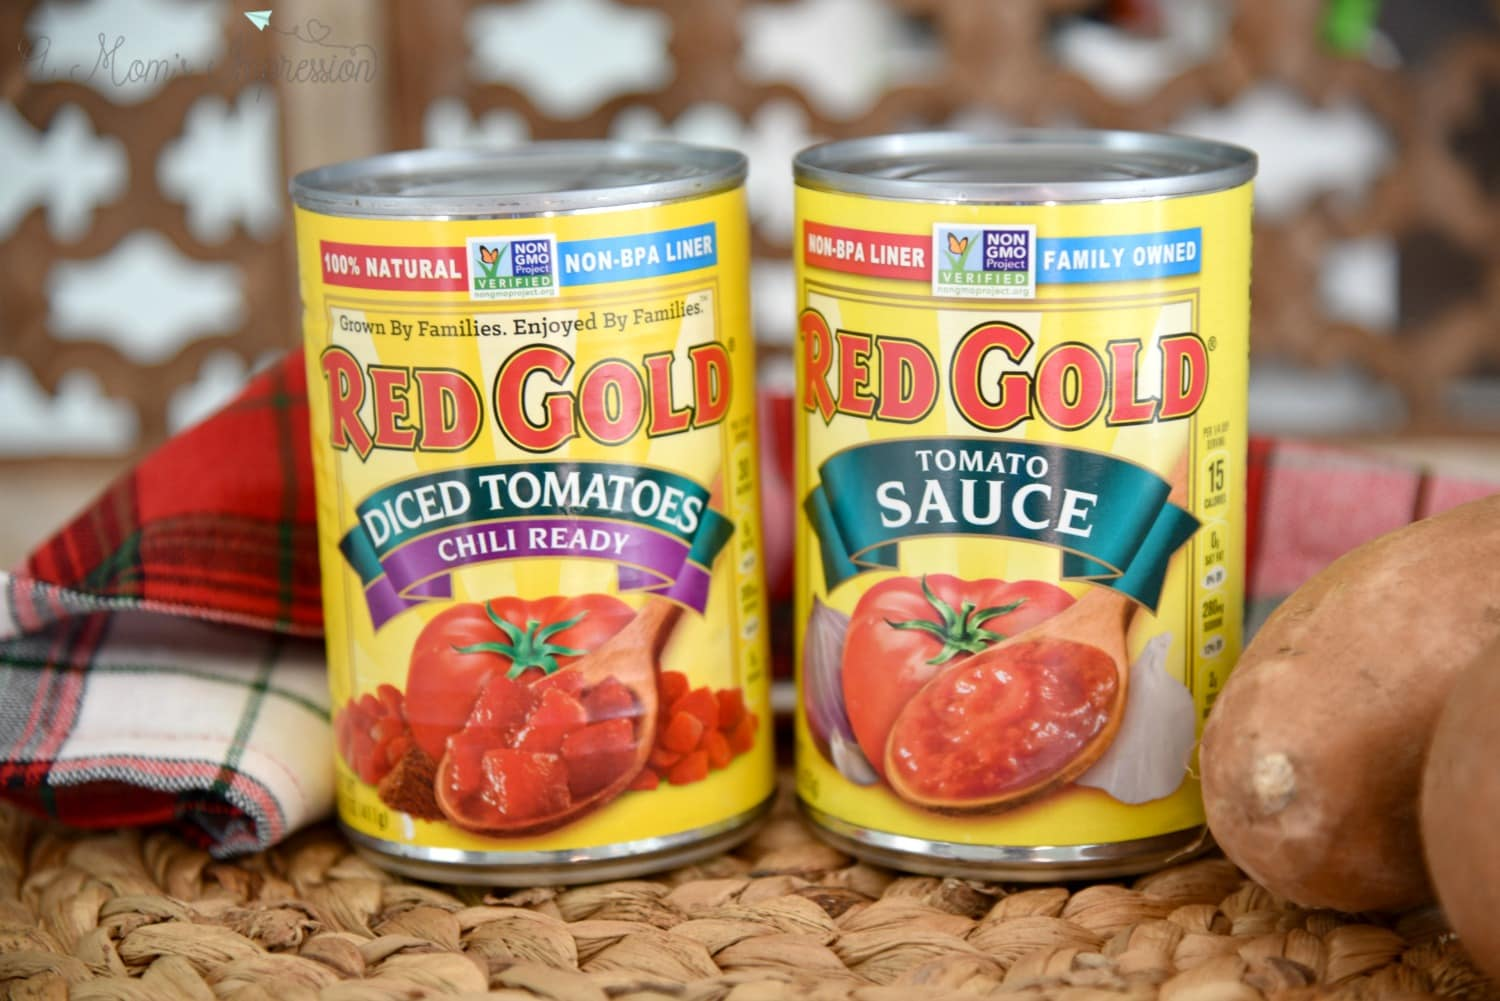 Red Gold Chili Ready tomatoes